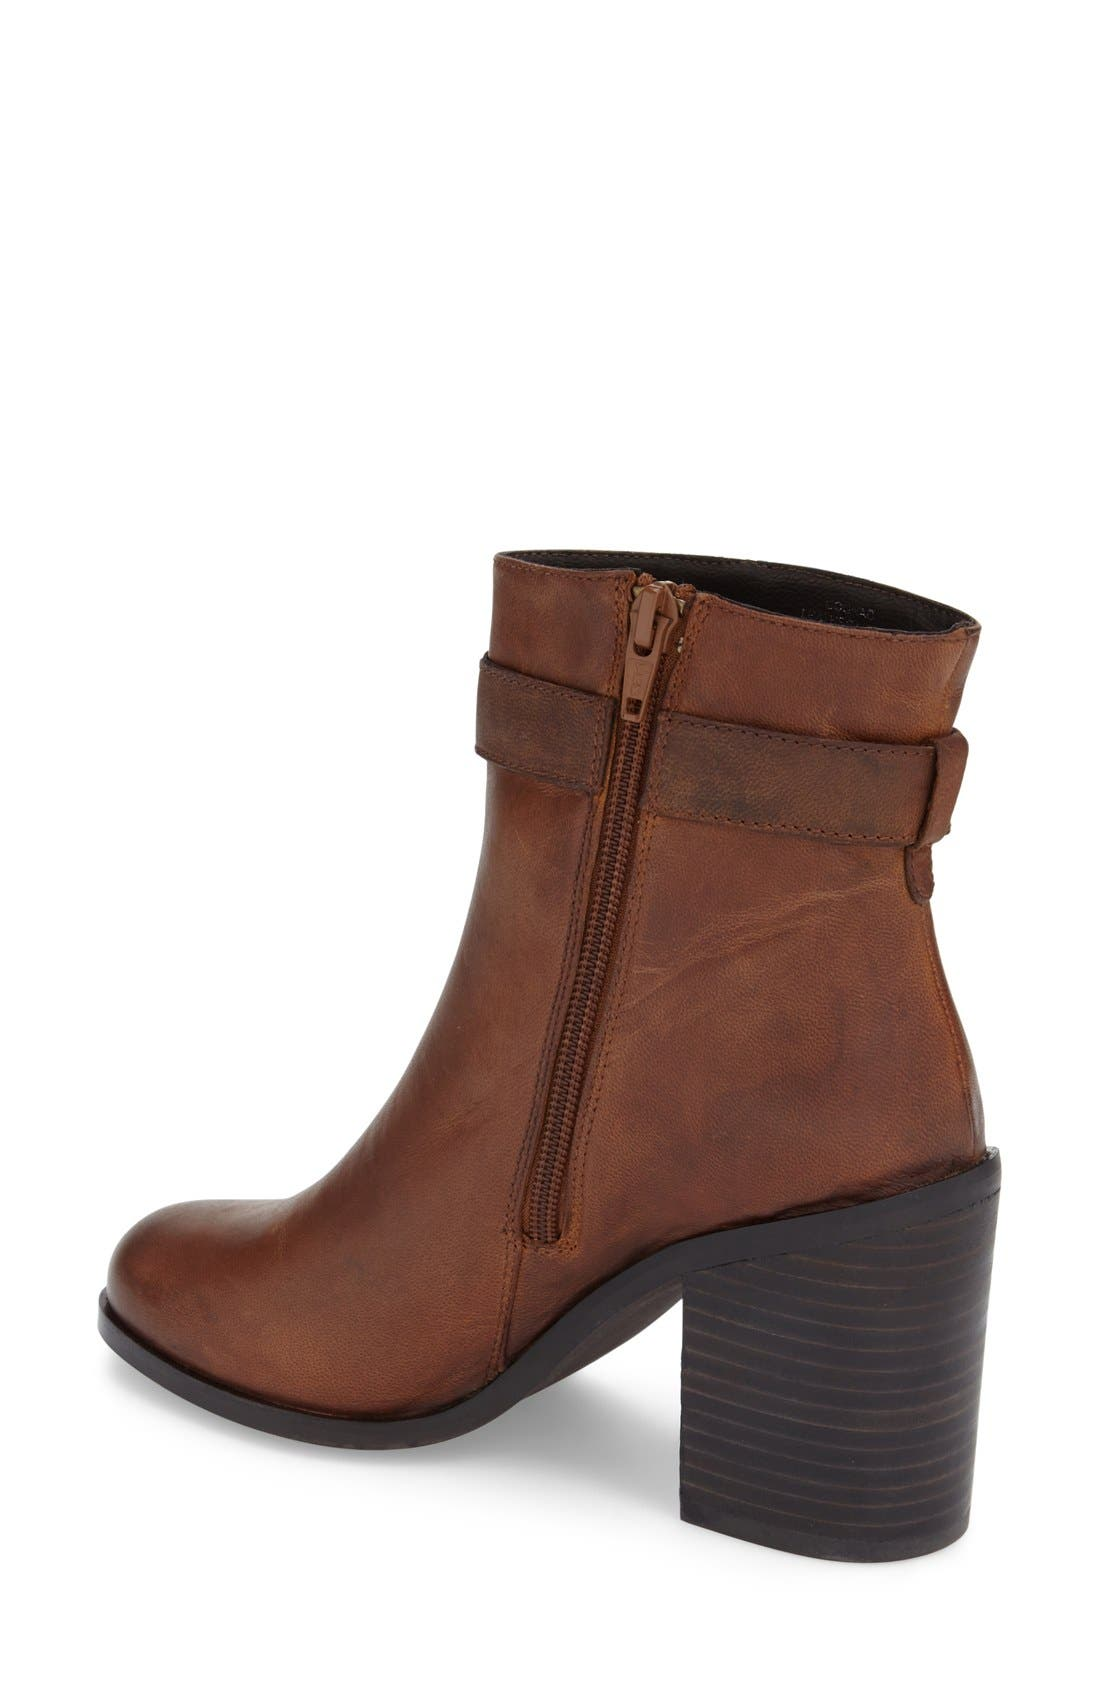 Alternate Image 2  - Steve Madden 'Porshia' Bootie (Women)